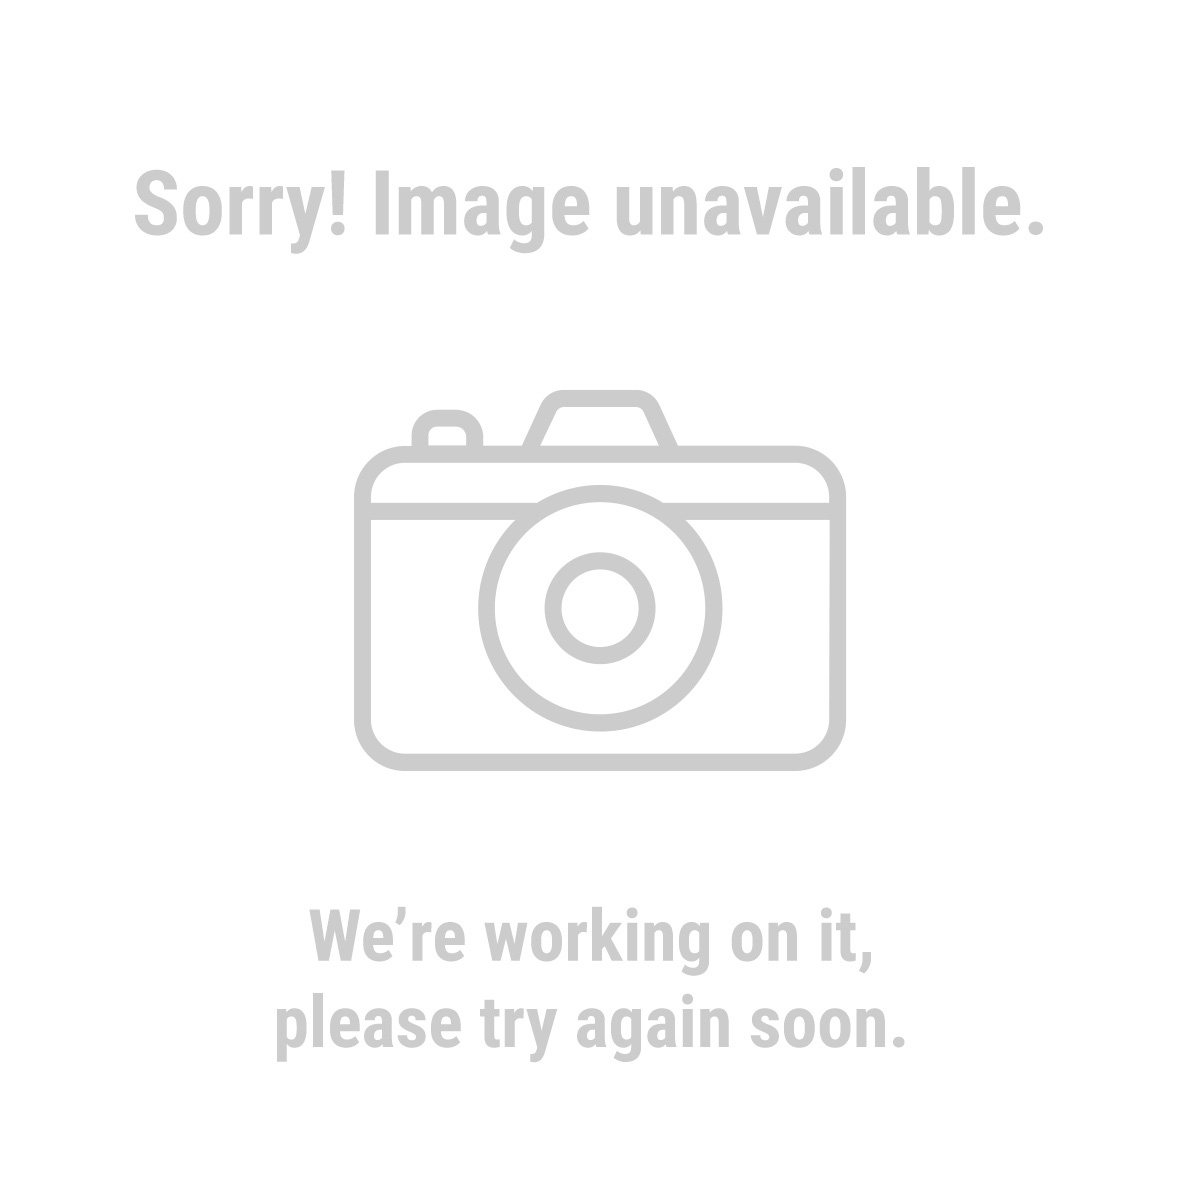 Cen-Tech 95364 Digital Scale